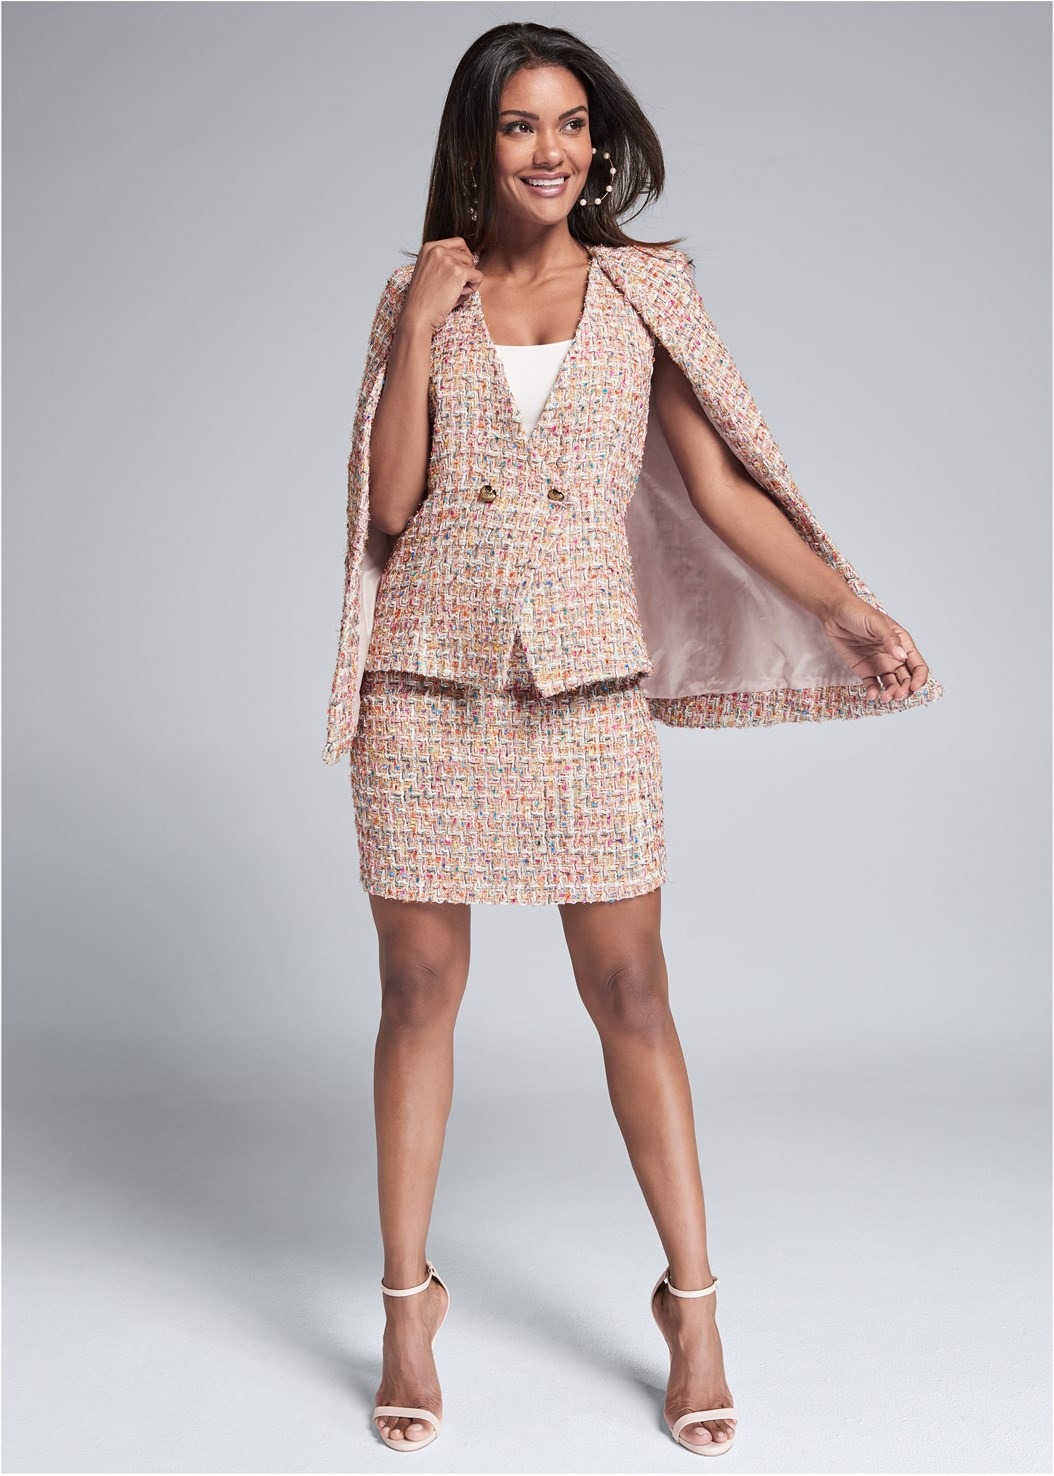 Tweed Skirt Suiting Set,Basic Cami Two Pack,Lace Cami,Ankle Strap Heels